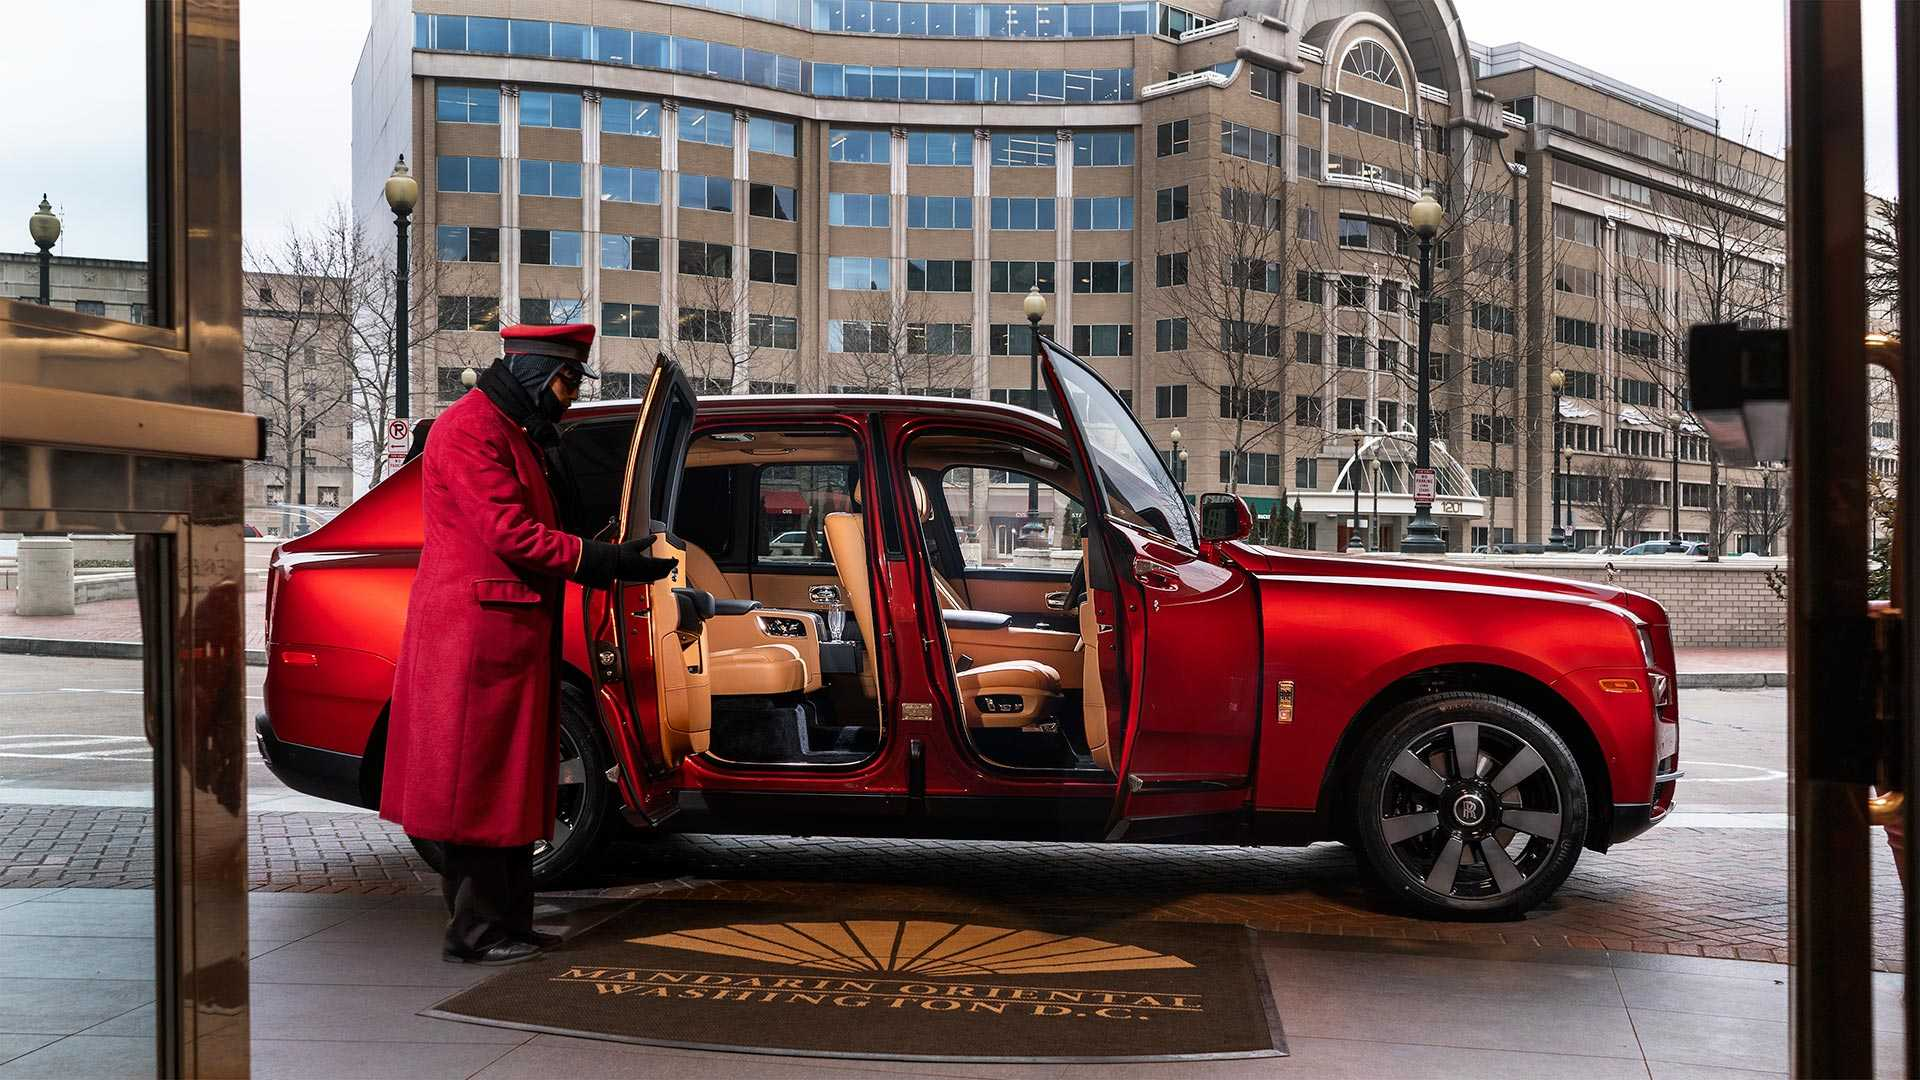 Rolls Royce Unveils Year Of The Pig Special Edition Models